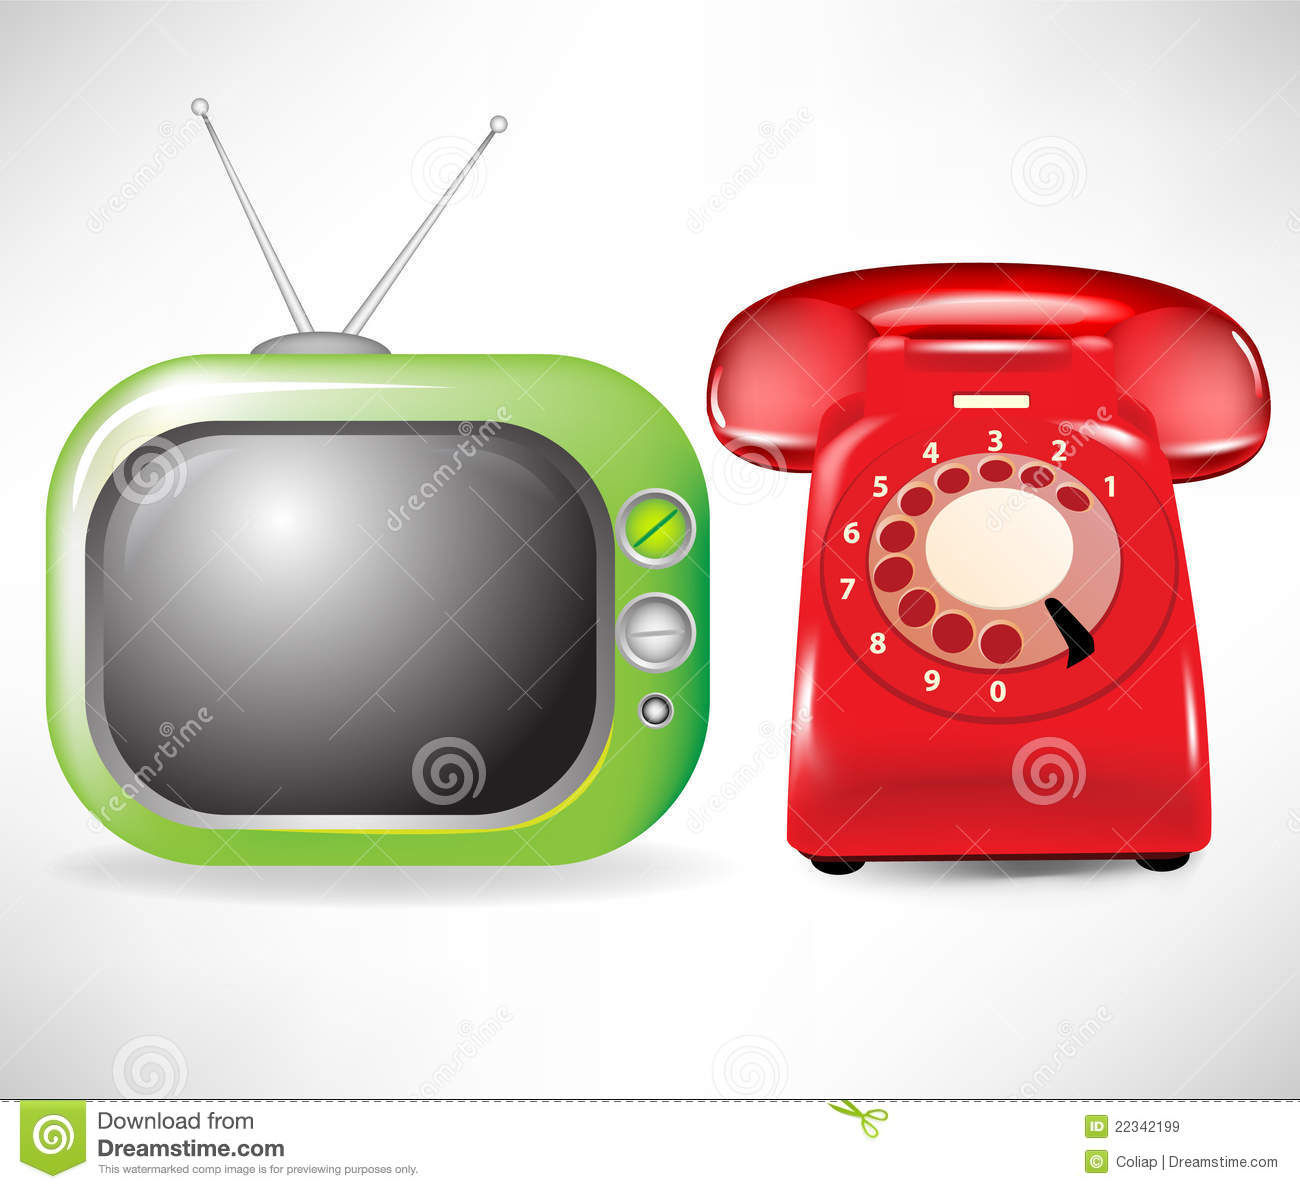 Retro Television And Phone Royalty Free Stock Images - Image: 22342199